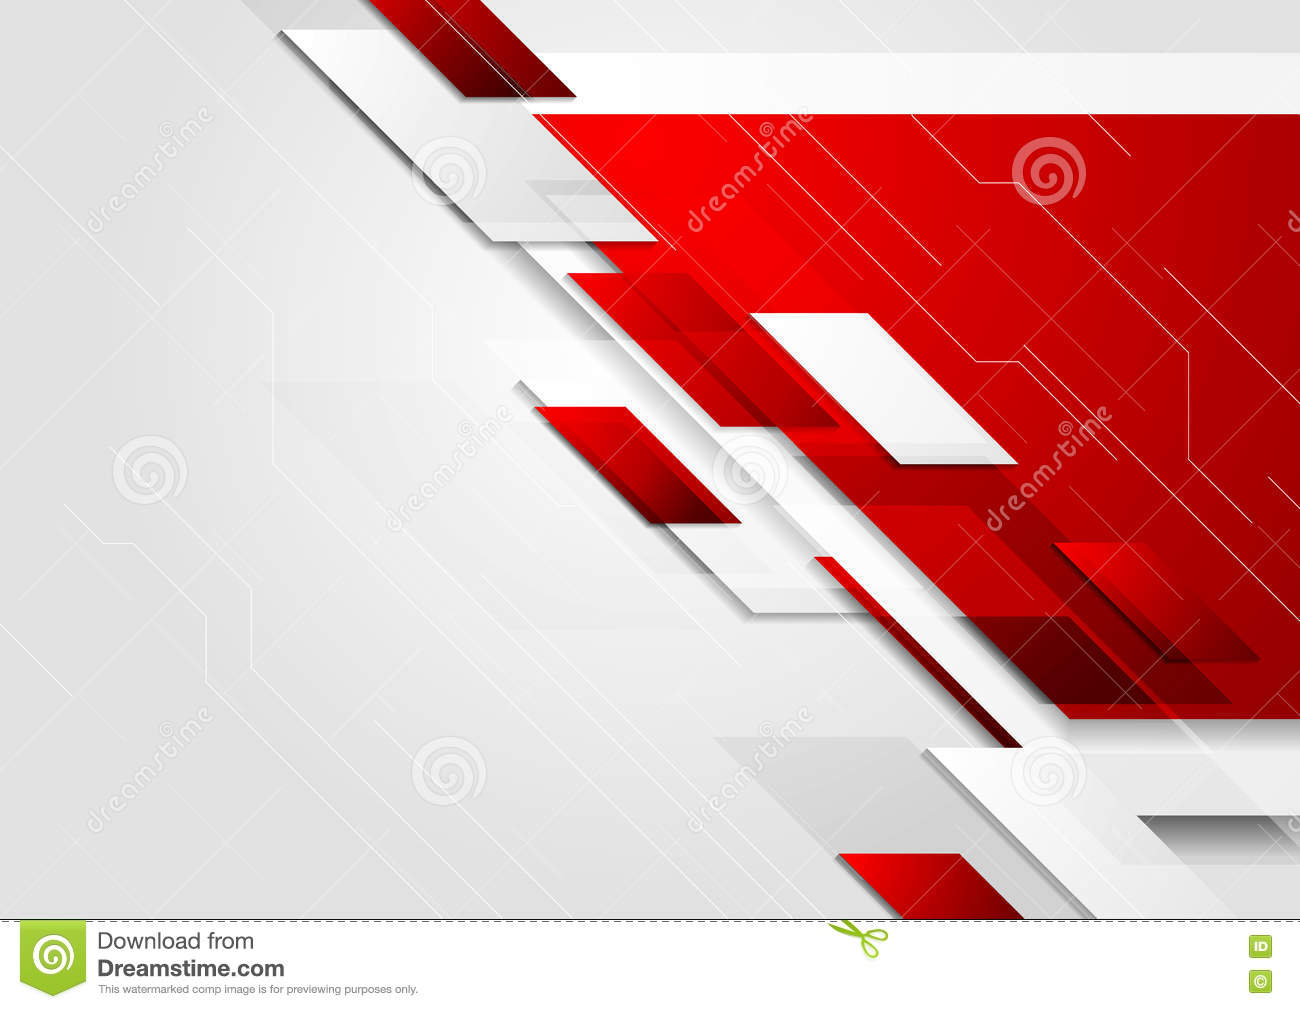 Vector Illustration Web Designs: Abstract Tech Corporate Vector Brochure Background Stock